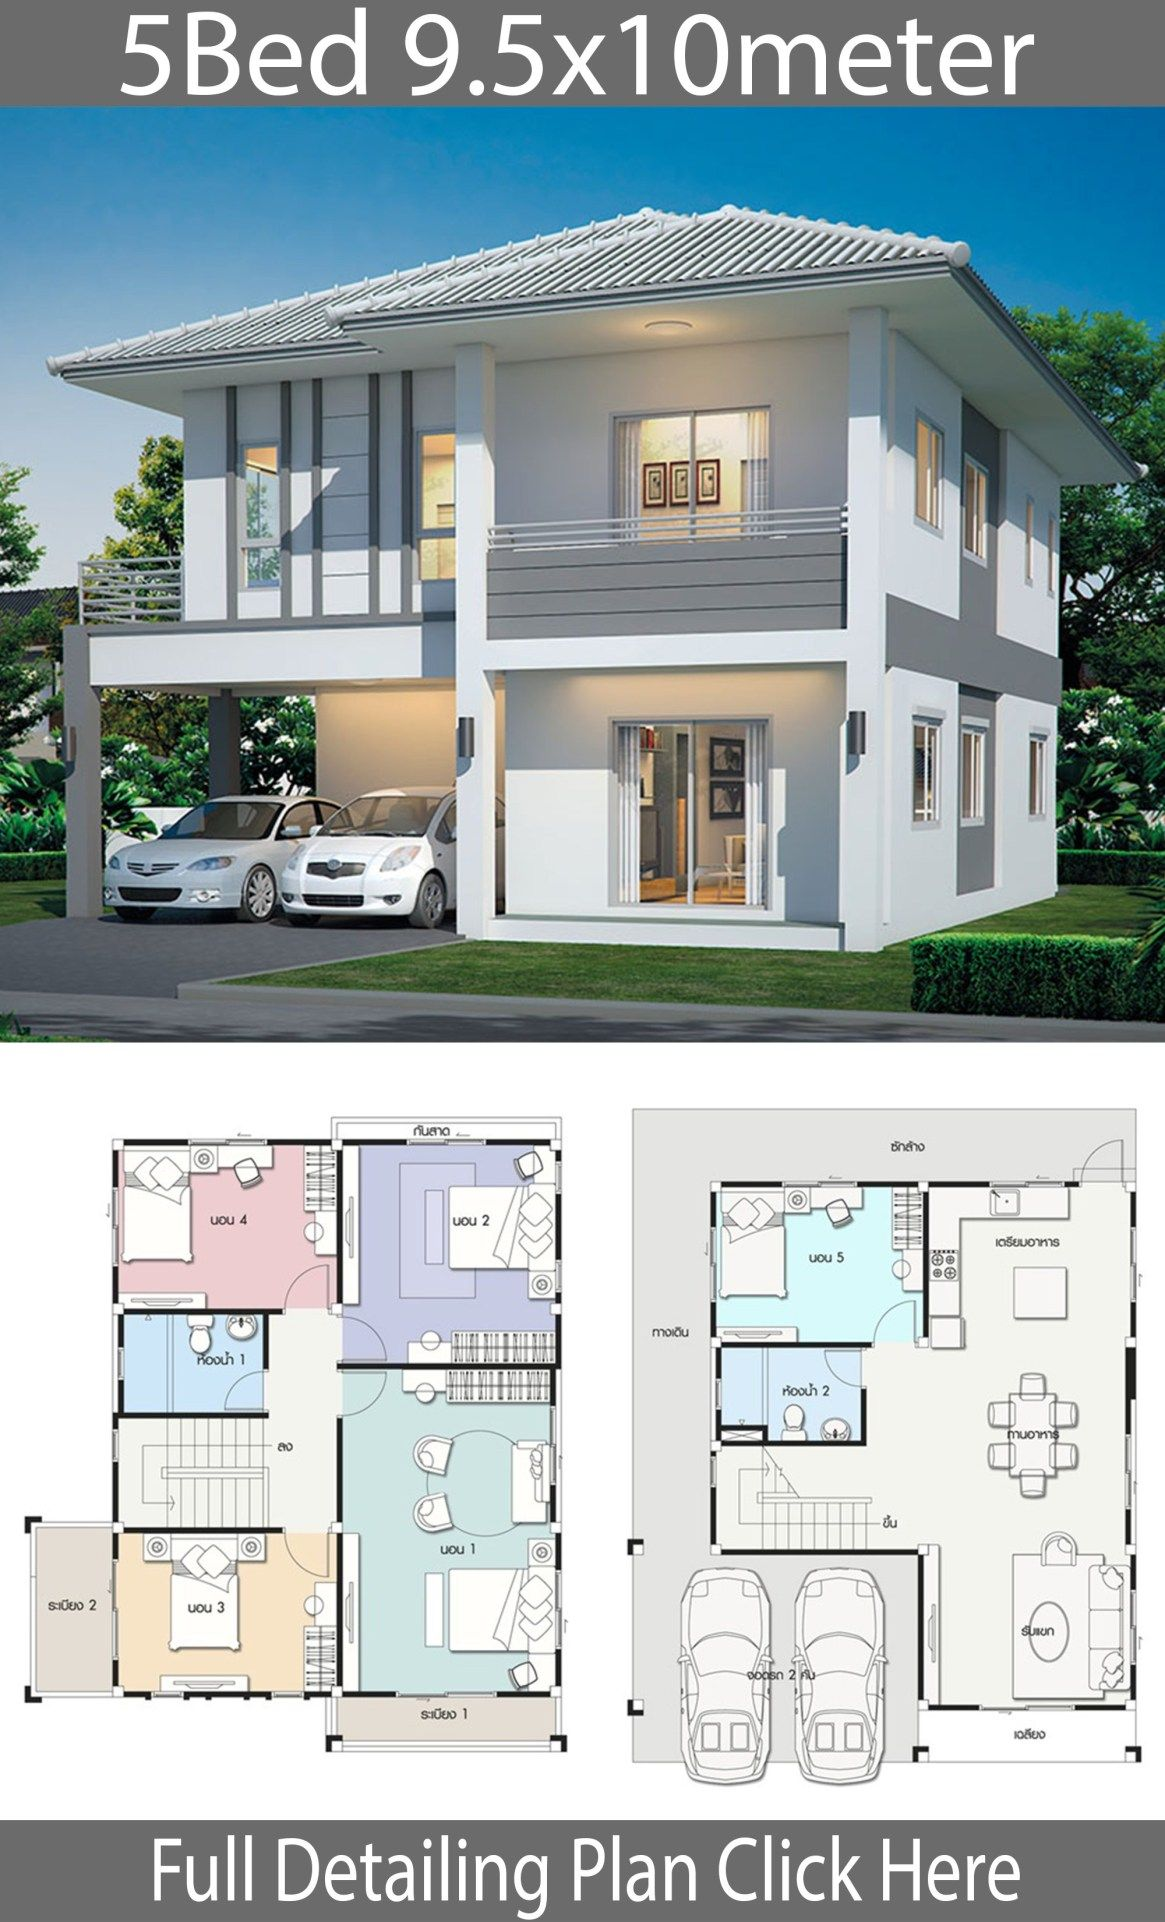 House Design Plan 9 5x10m With 5 Bedrooms Home Design Plans Bungalow House Design Small House Design Plans